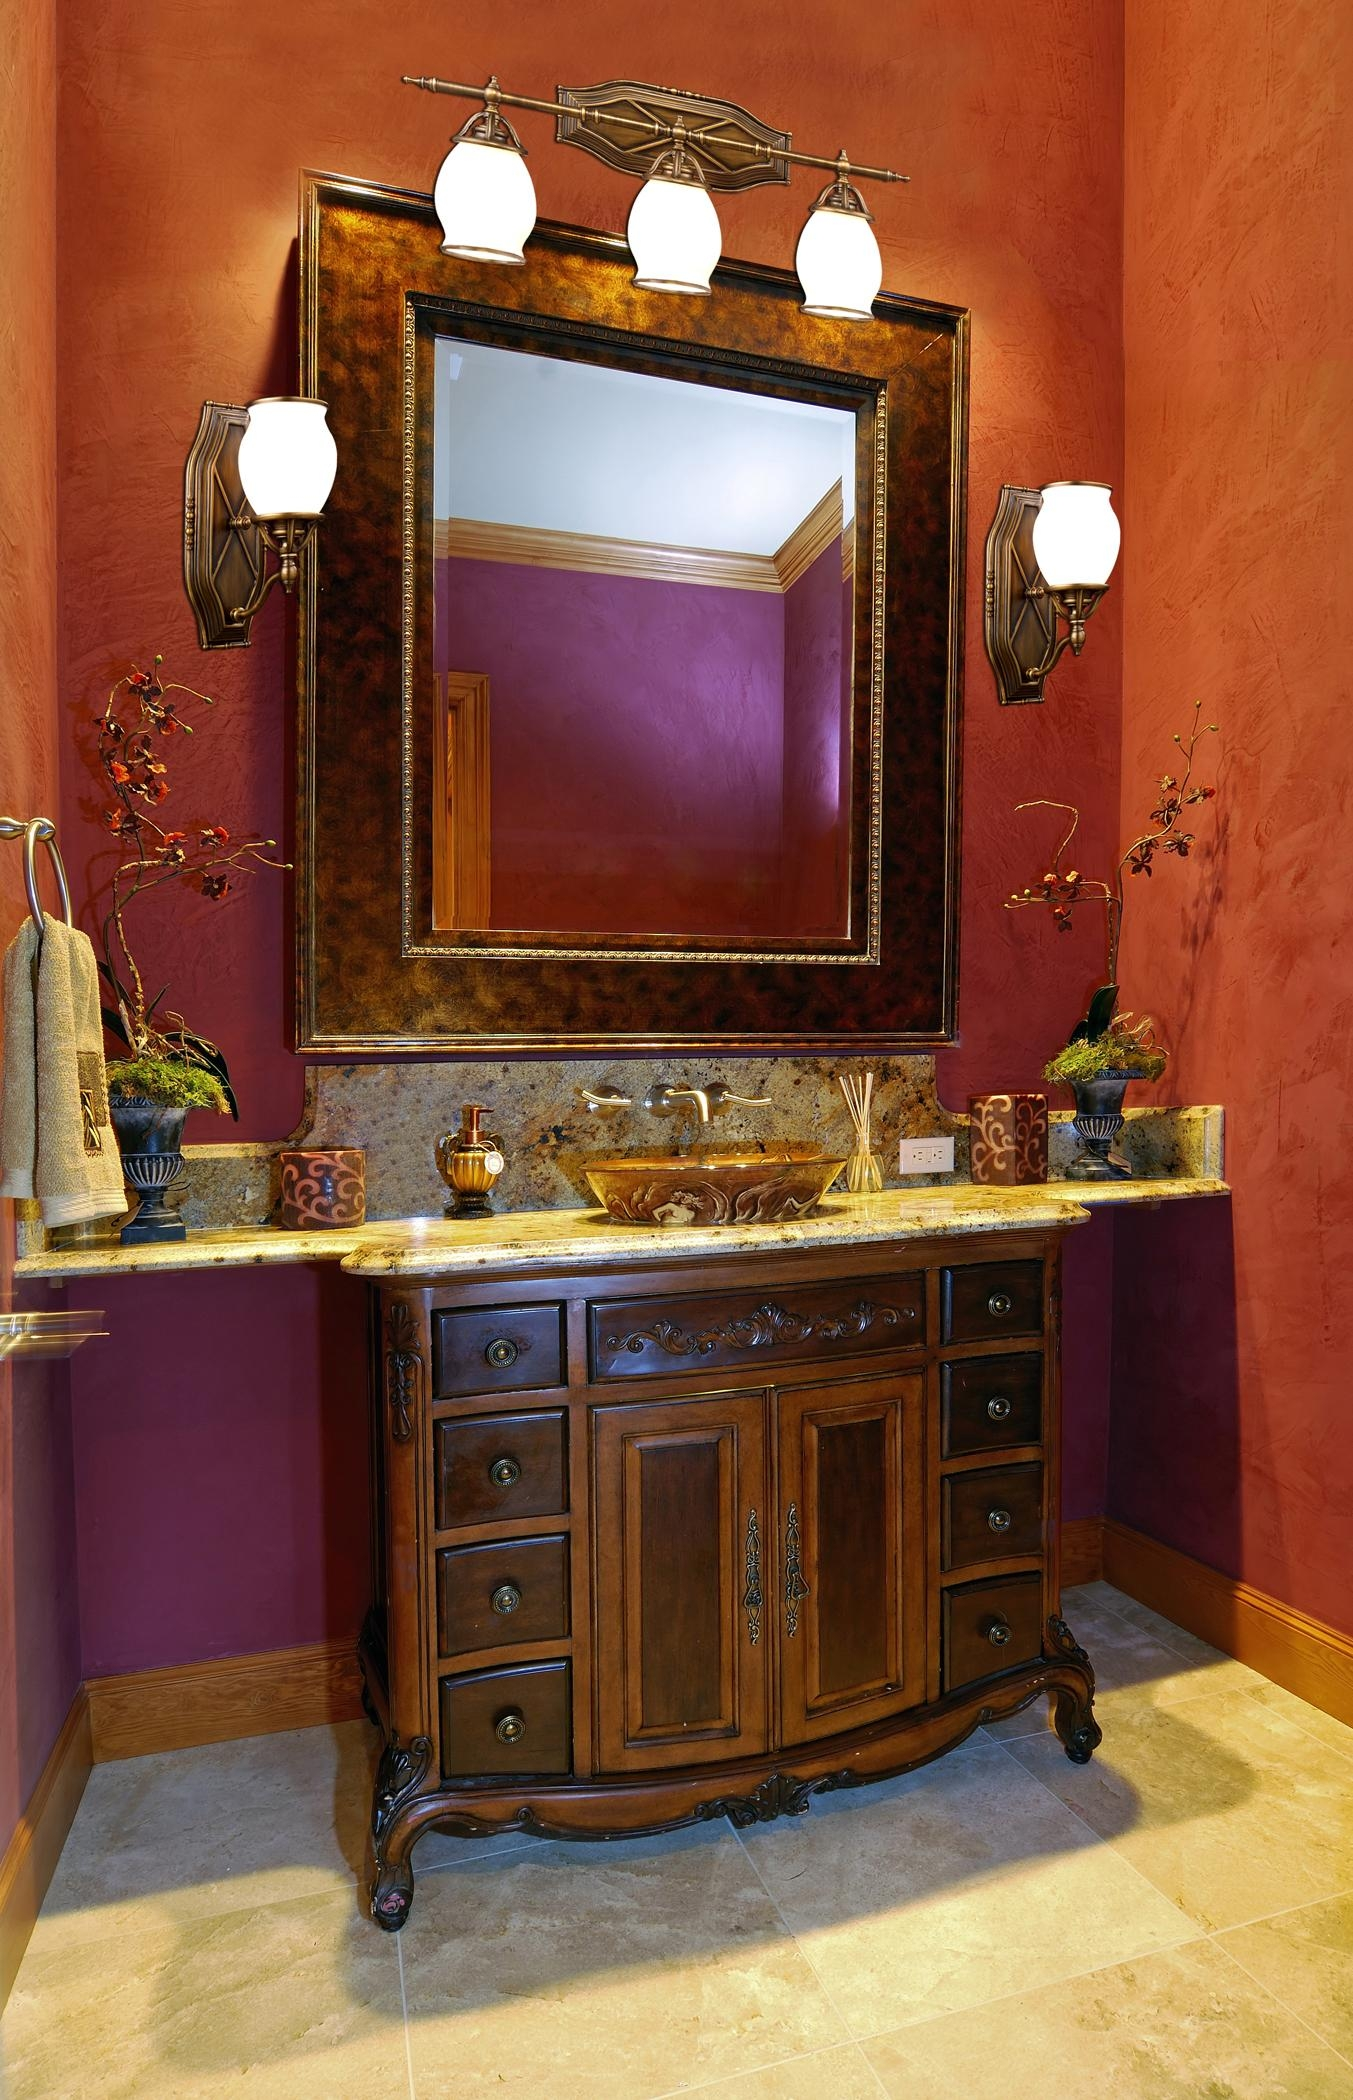 Bathroom Lighting And Mirrors | Bathroom Design Ideas Intended For Bathroom Lighting And Mirrors (Image 8 of 20)